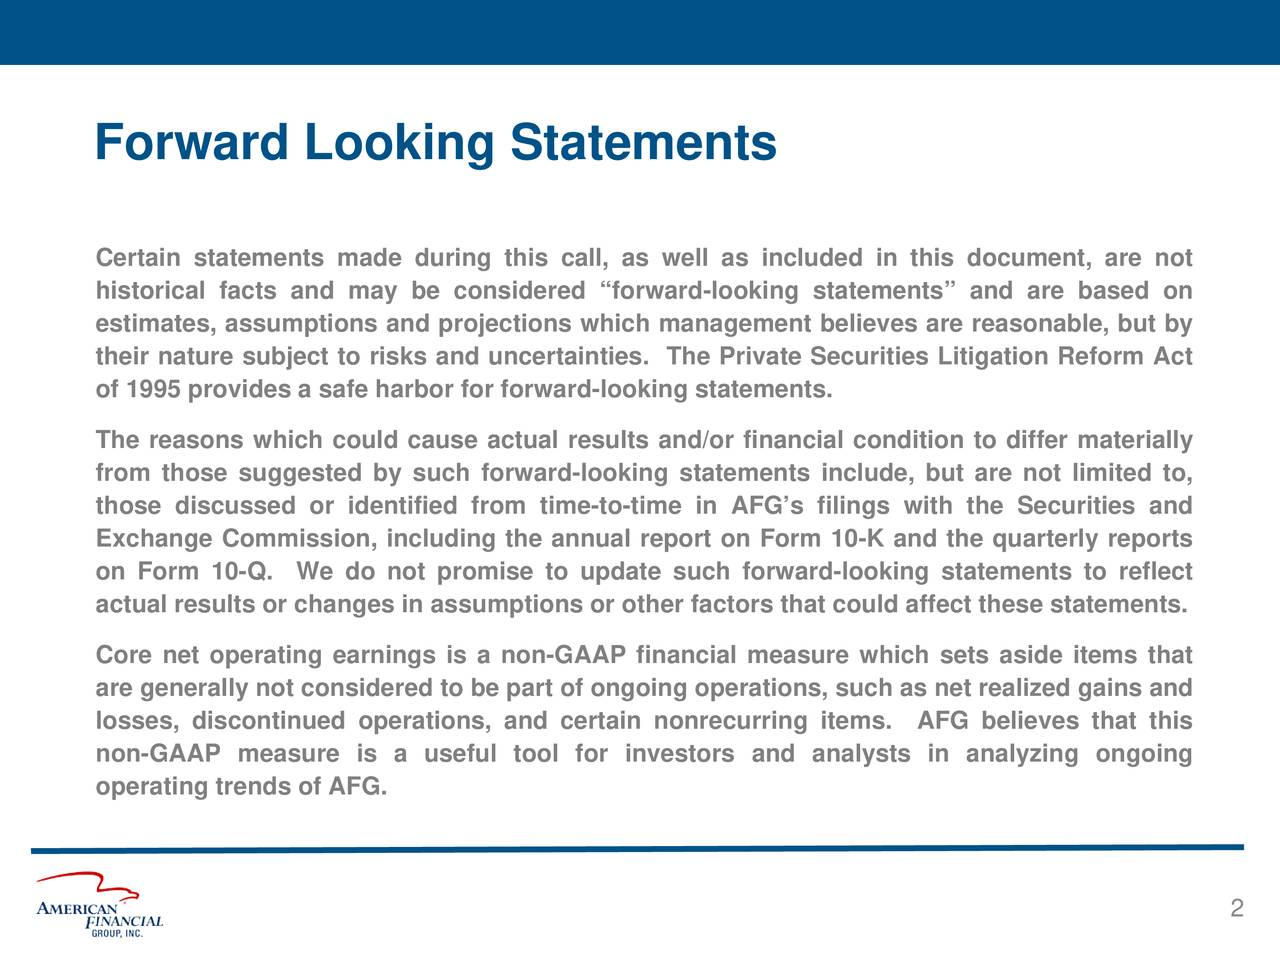 """Certain statements made during this call, as well as included in this document, are not historical facts and may be considered """"forward-looking statements"""" and are based on estimates, assumptions and projections which management believes are reasonable, but by their nature subject to risks and uncertainties. The Private Securities Litigation Reform Act of 1995 provides a safe harbor for forward-looking statements. The reasons which could cause actual results and/or financial condition to differ materially from those suggested by such forward-looking statements include, but are not limited to, those discussed or identified from time-to-time in AFG's filings with the Securities and Exchange Commission, including the annual report on Form 10-K and the quarterly reports on Form 10-Q. We do not promise to update such forward-looking statements to reflect actual results or changes in assumptions or other factors that could affect these statements. Core net operating earnings is a non-GAAP financial measure which sets aside items that are generally not considered to be part of ongoing operations, such as net realized gains and losses, discontinued operations, and certain nonrecurring items. AFG believes that this non-GAAP measure is a useful tool for investors and analysts in analyzing ongoing operating trends of AFG. 2"""